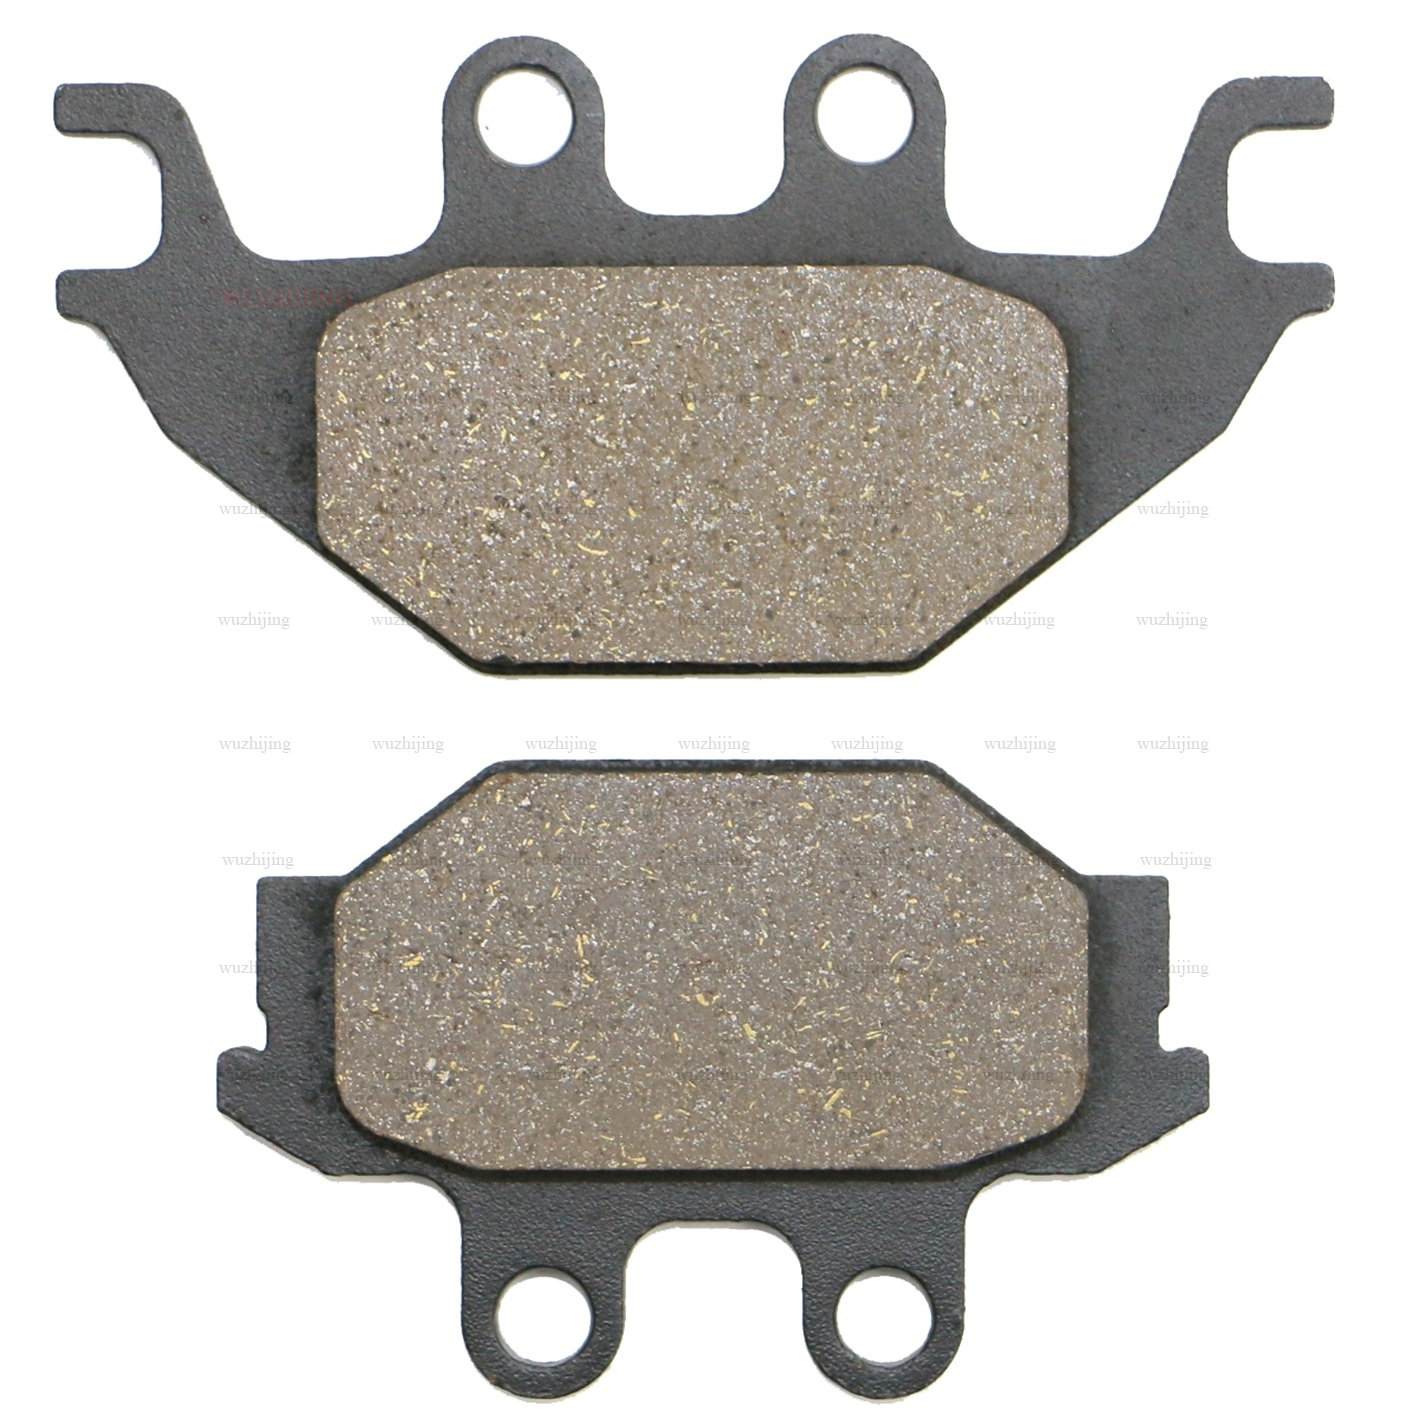 Brake Pads Set fit ADLY Canyon 280 Quad 500 Flat (09-11) Conquest 600 (11) Cross Road 220 S Boost 300 Hurricane 320 Flat (09) ...